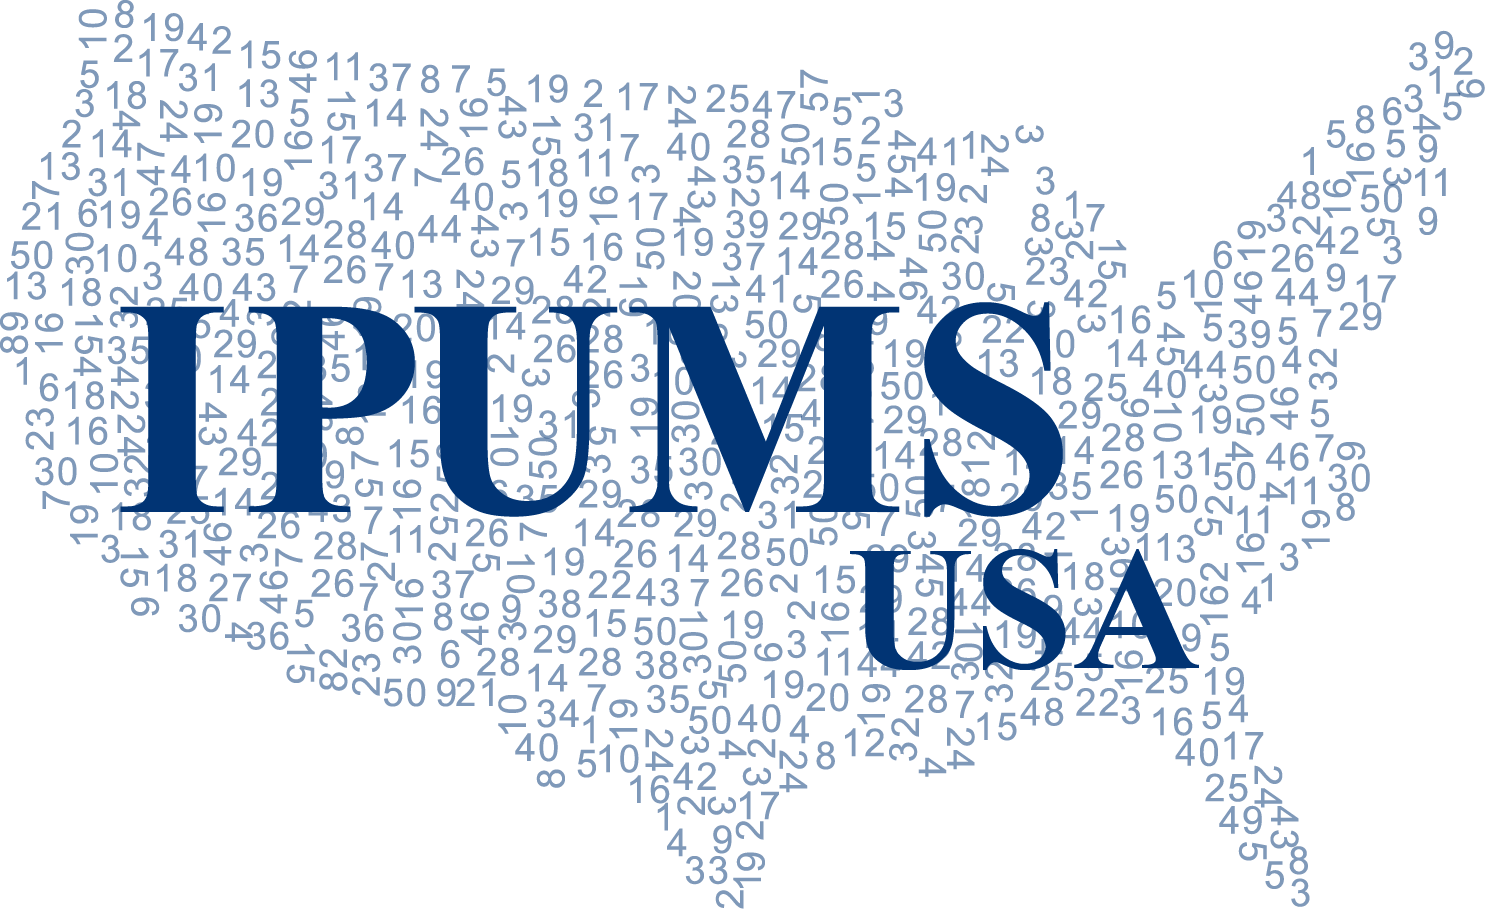 ipums-usa-logo